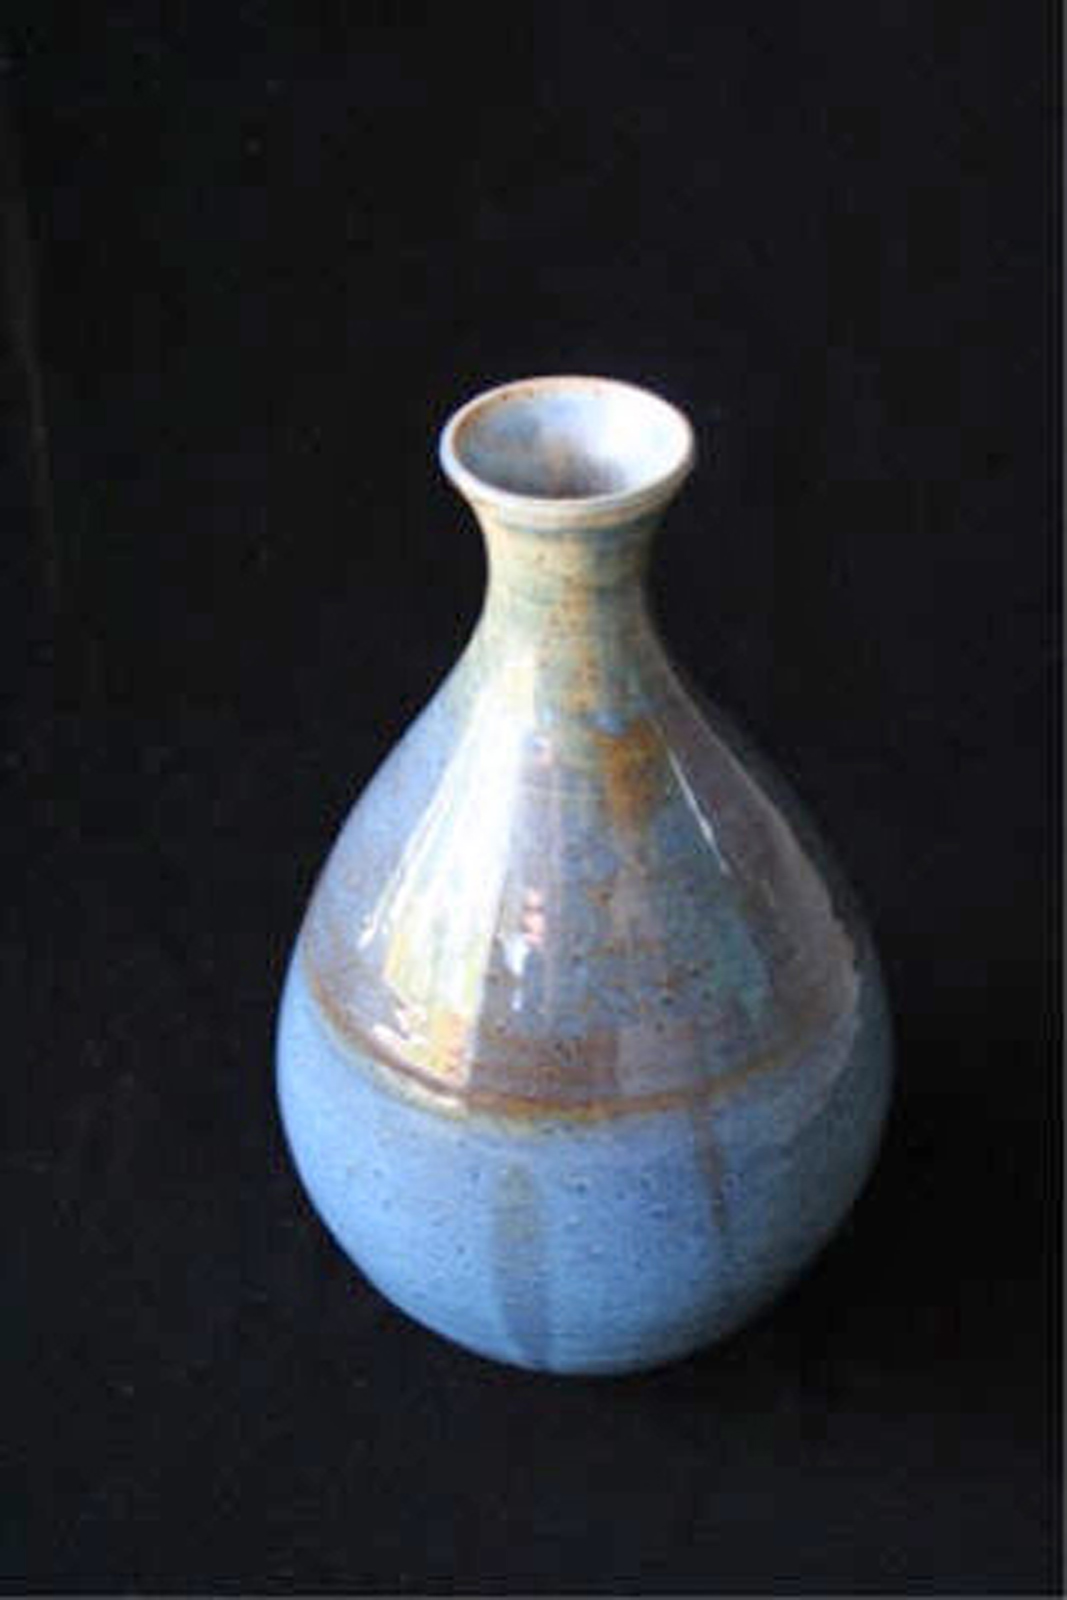 """One Blue Tear  , 2007, wheel-thrown stoneware Fired at cone 6 oxidation, 9"""" h x 5 1/2"""" diaCollection of Mr. Charles Muñoz, Naples, FL"""